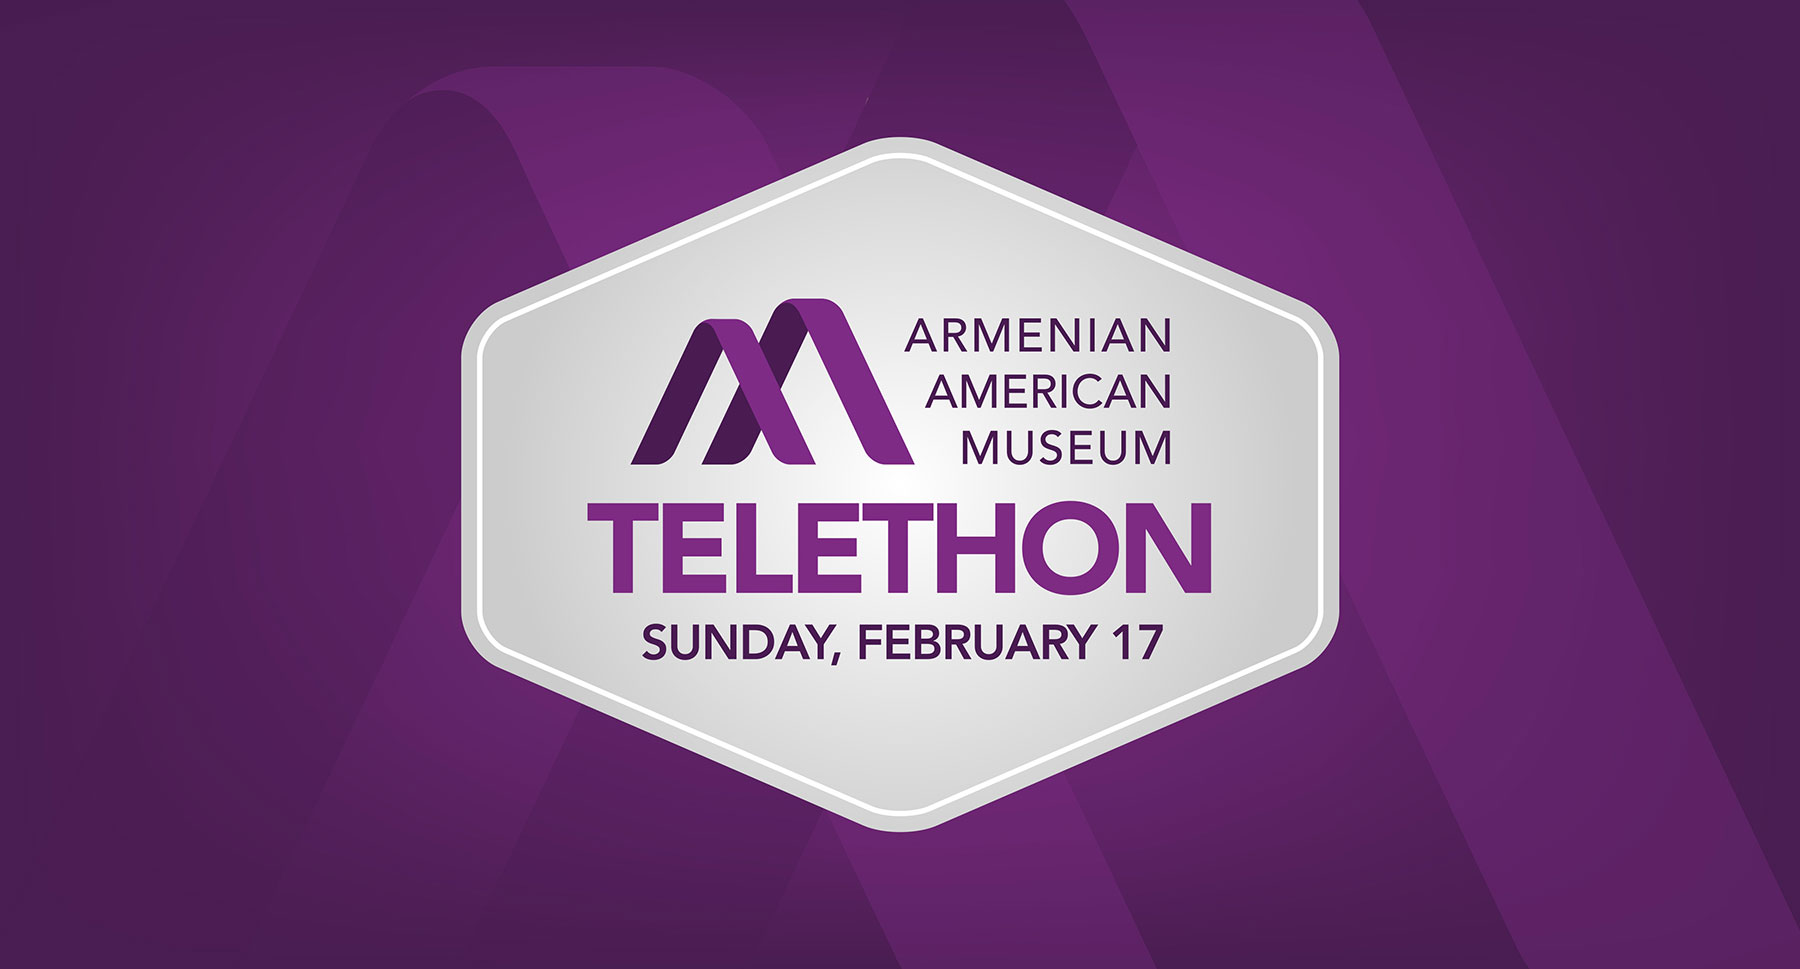 Armenian American Museum Announces Telethon on February 17